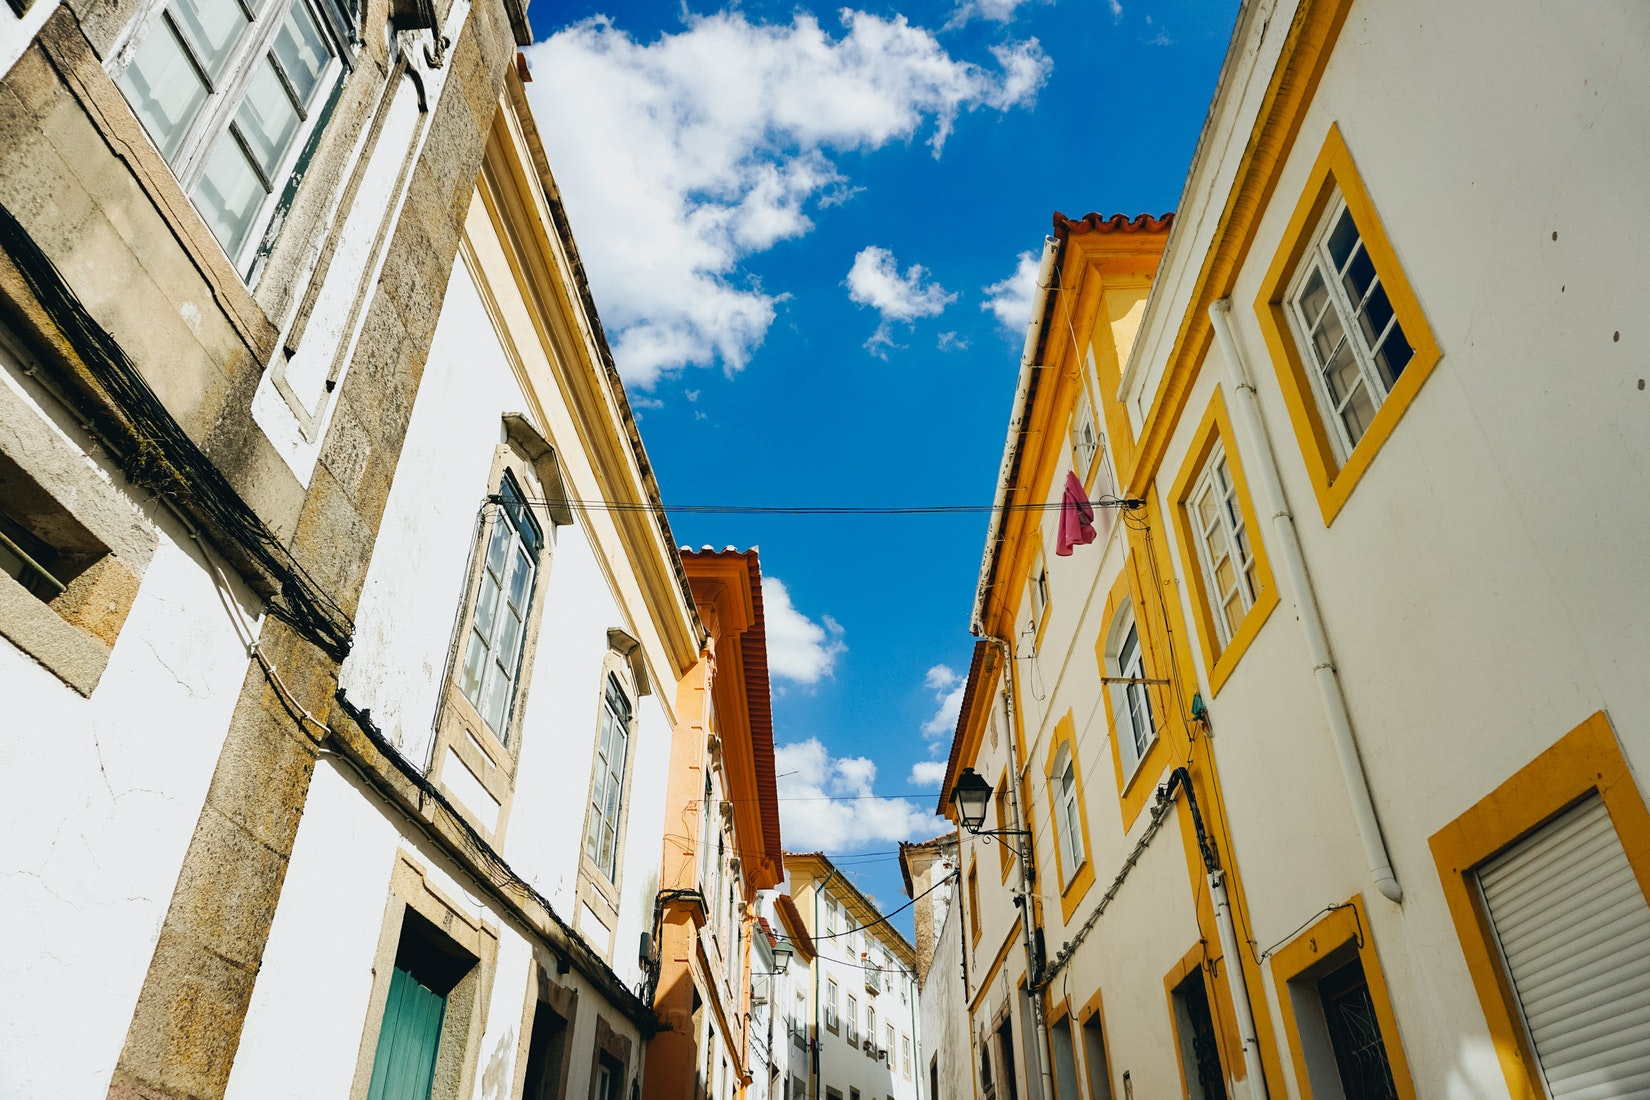 White-washed buildings in Portalegre, Portugal